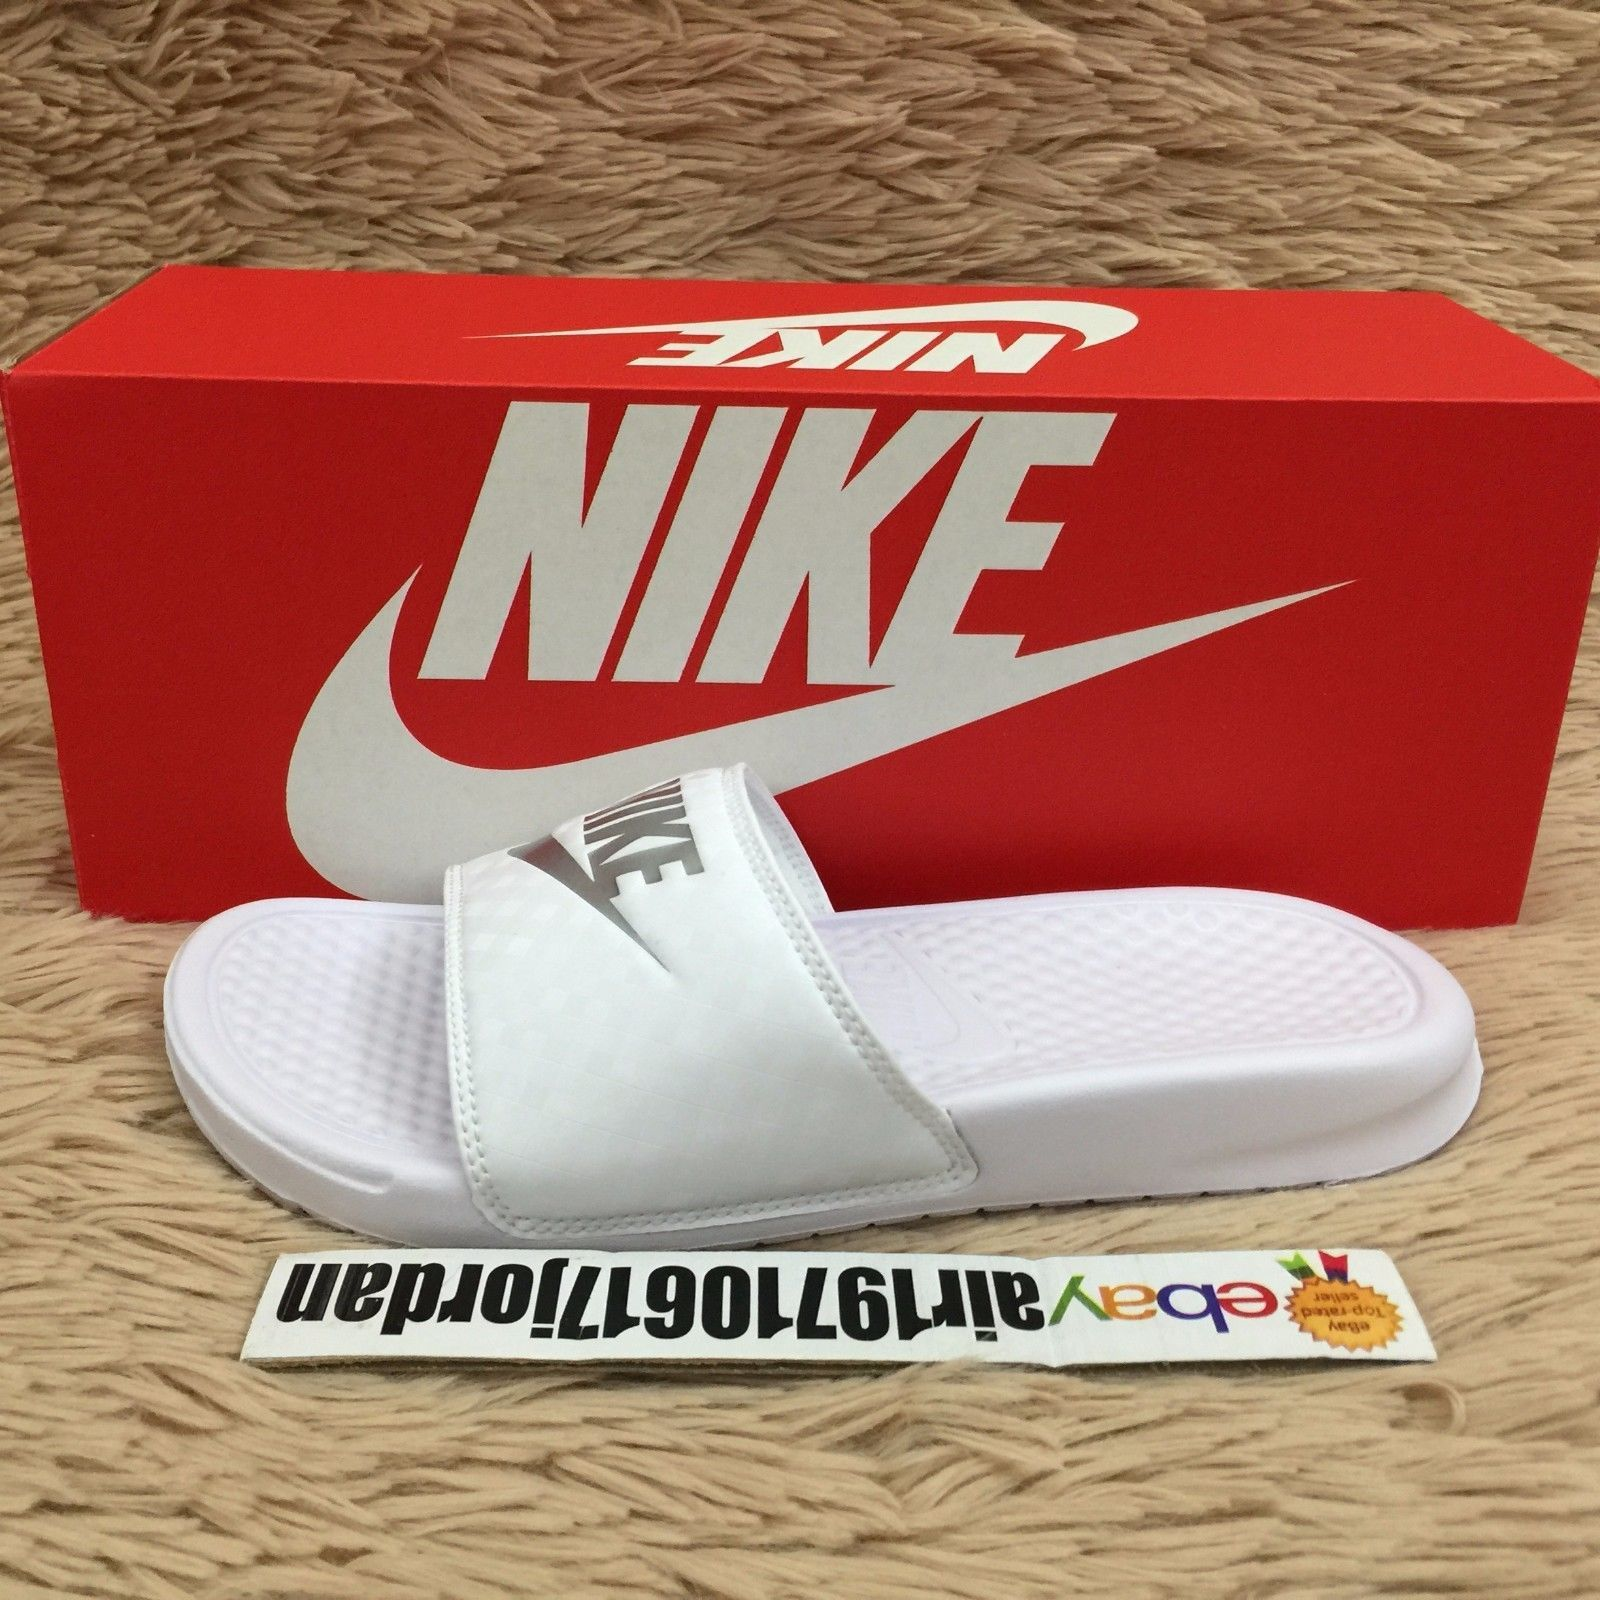 new concept 587af 563e0 Wmns Nike Benassi Jdi White Silver 343881-102 Us 69 Slides Sandal Slippers  Nsw